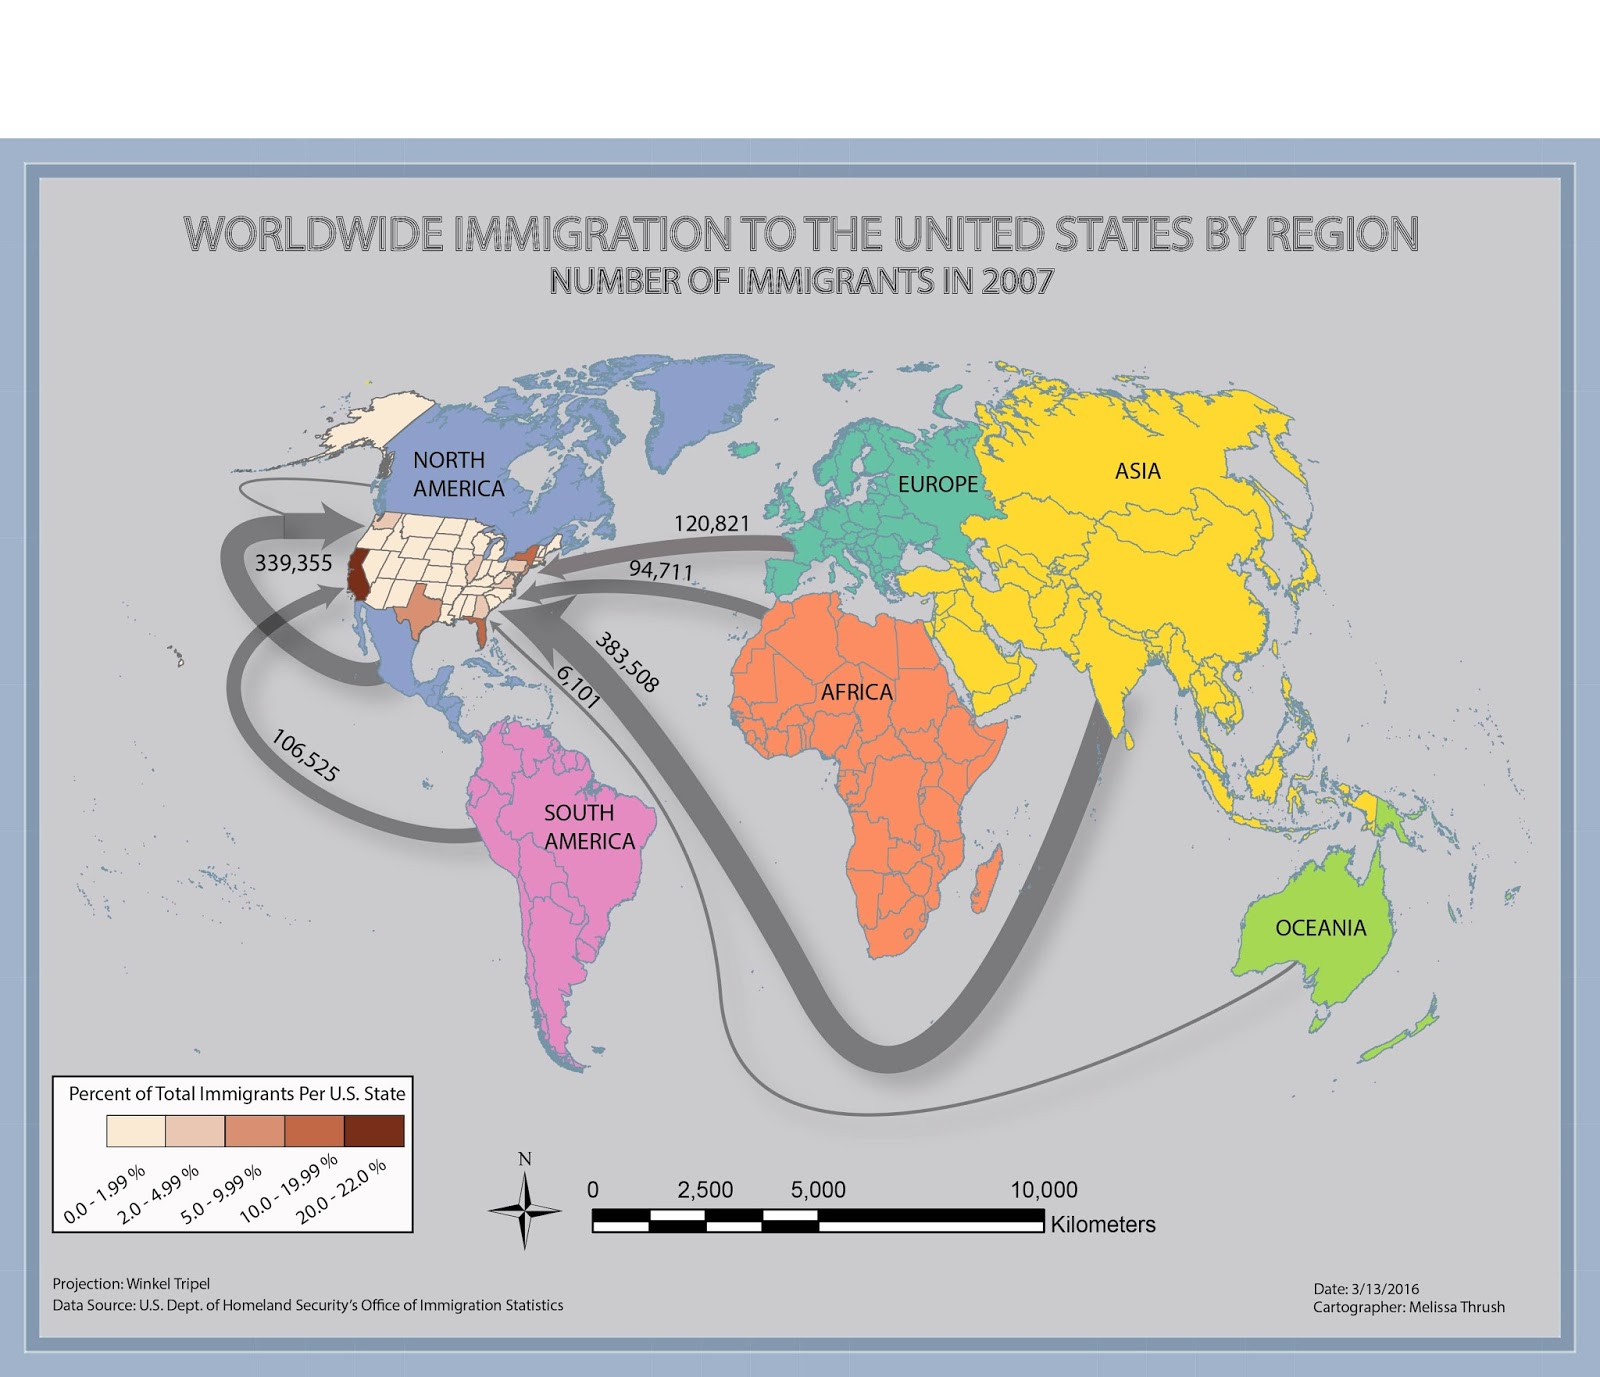 worldwide immigration to the united states by region in 2007